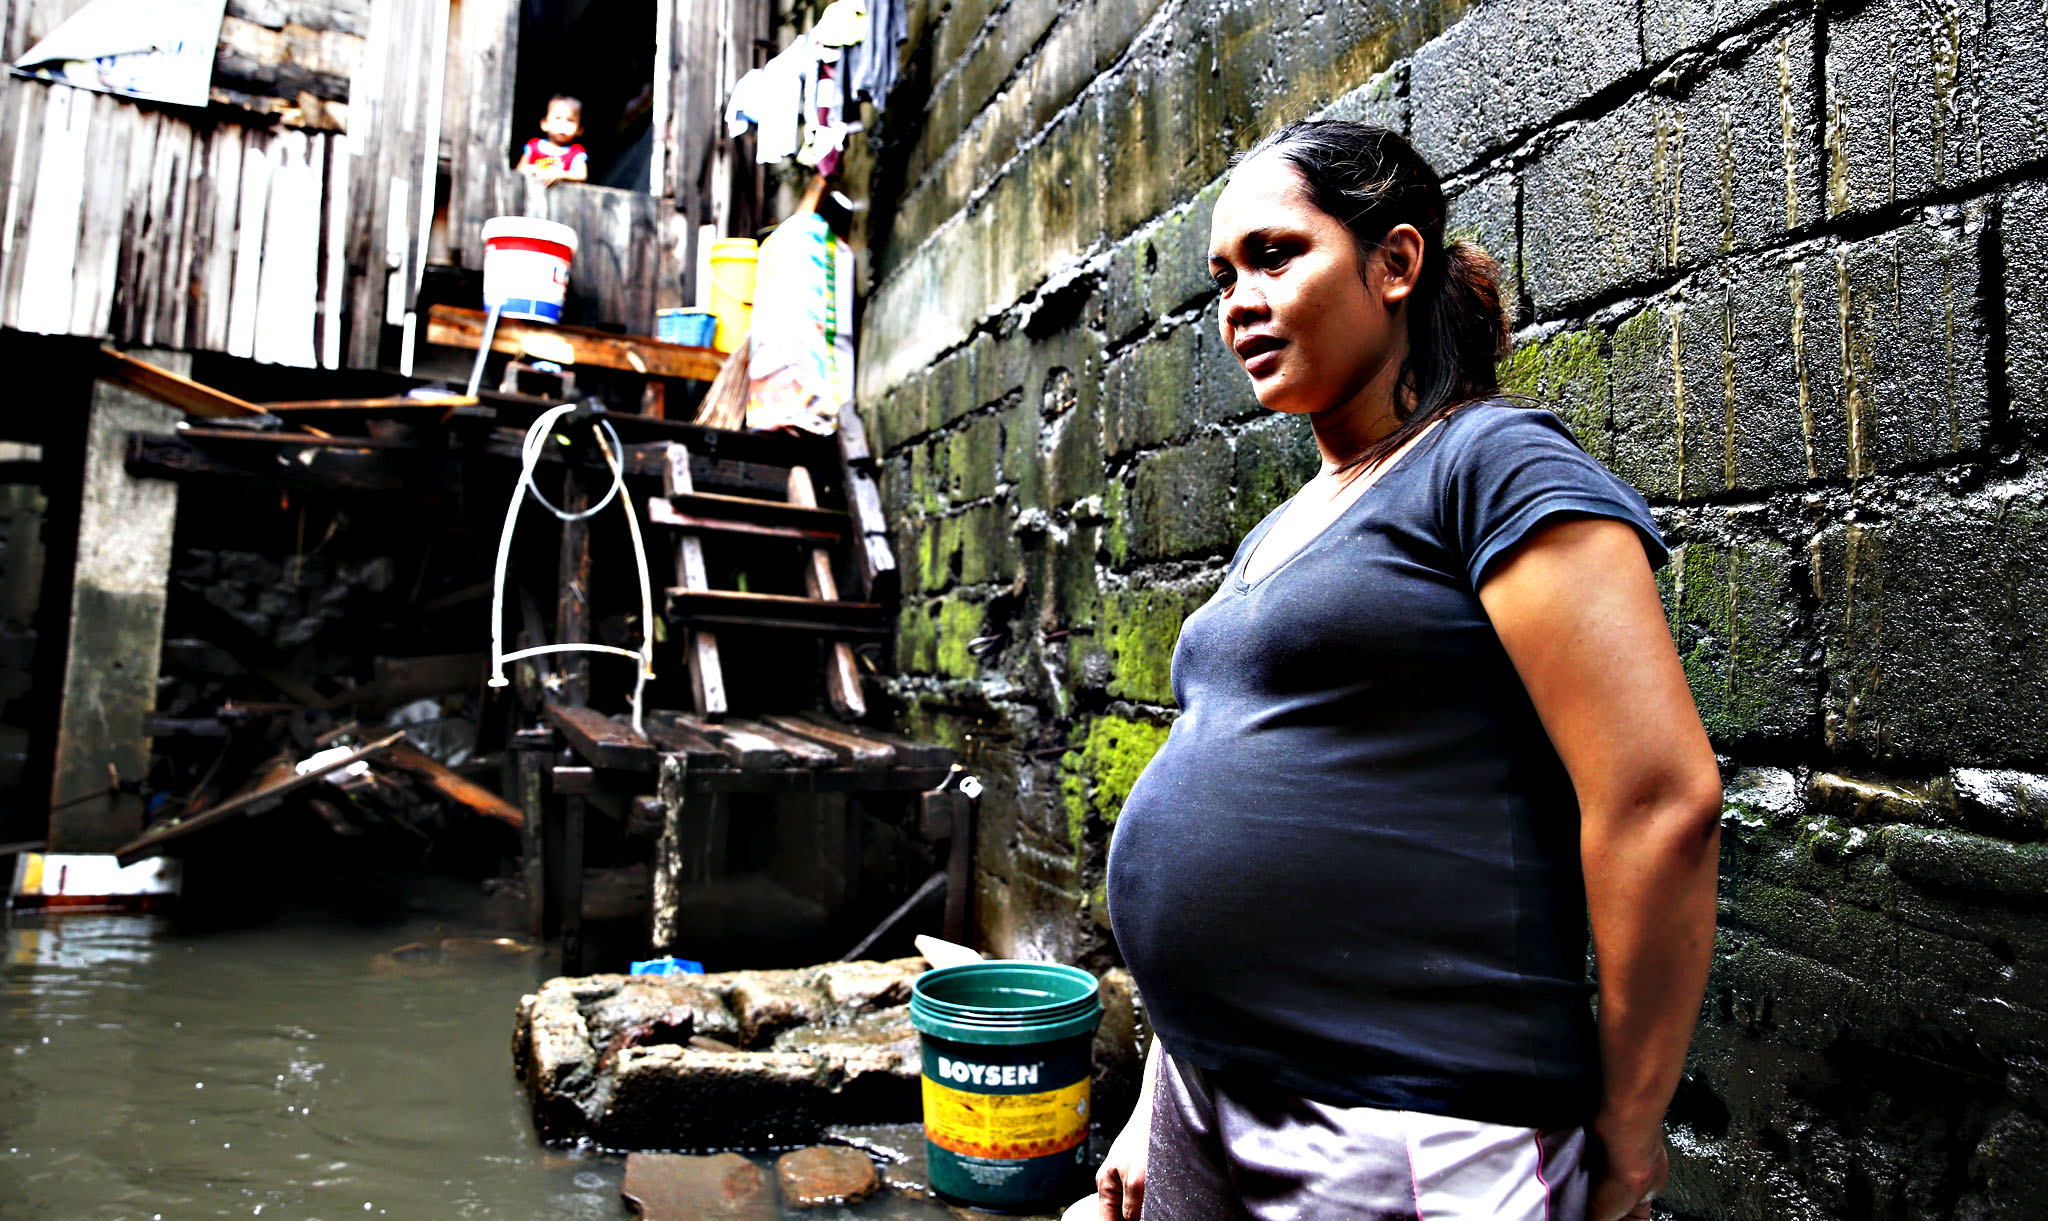 An eight-month pregnant woman stands near the entrance of her home at a flooded squatter colony beside a creek in Meycauayan Bulacan north of Manila in the Philippines July 10, 2015. The United Nations Population Fund, (UNFPA) called on humanitarian agencies to redouble efforts in addressing the special needs of vulnerable populations in preparedness and response measures to disasters as nations observe World Population Day on July 11